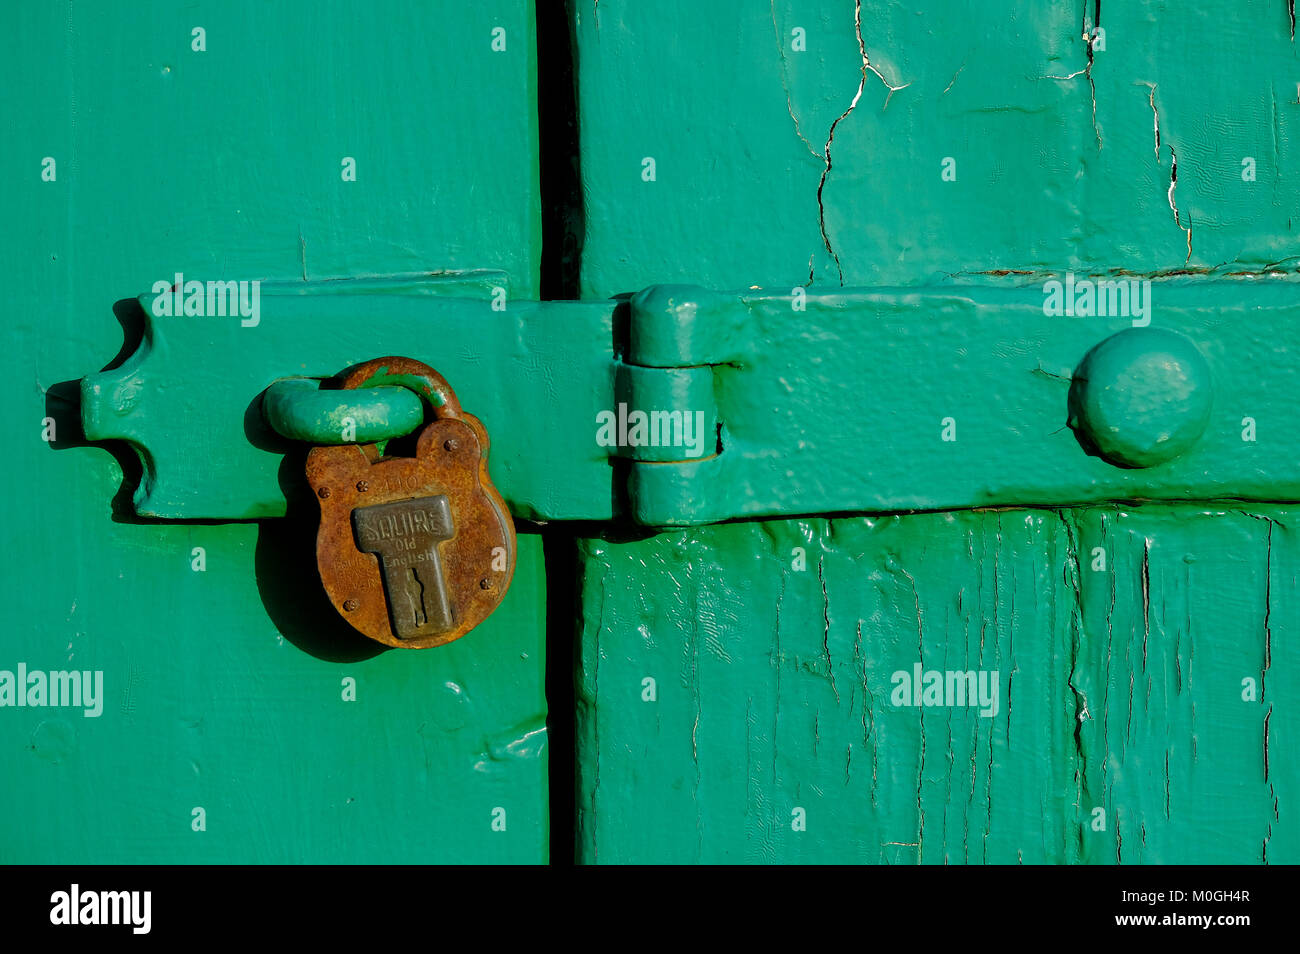 old rusty padlock on green painted garage door, norfolk, england Stock Photo